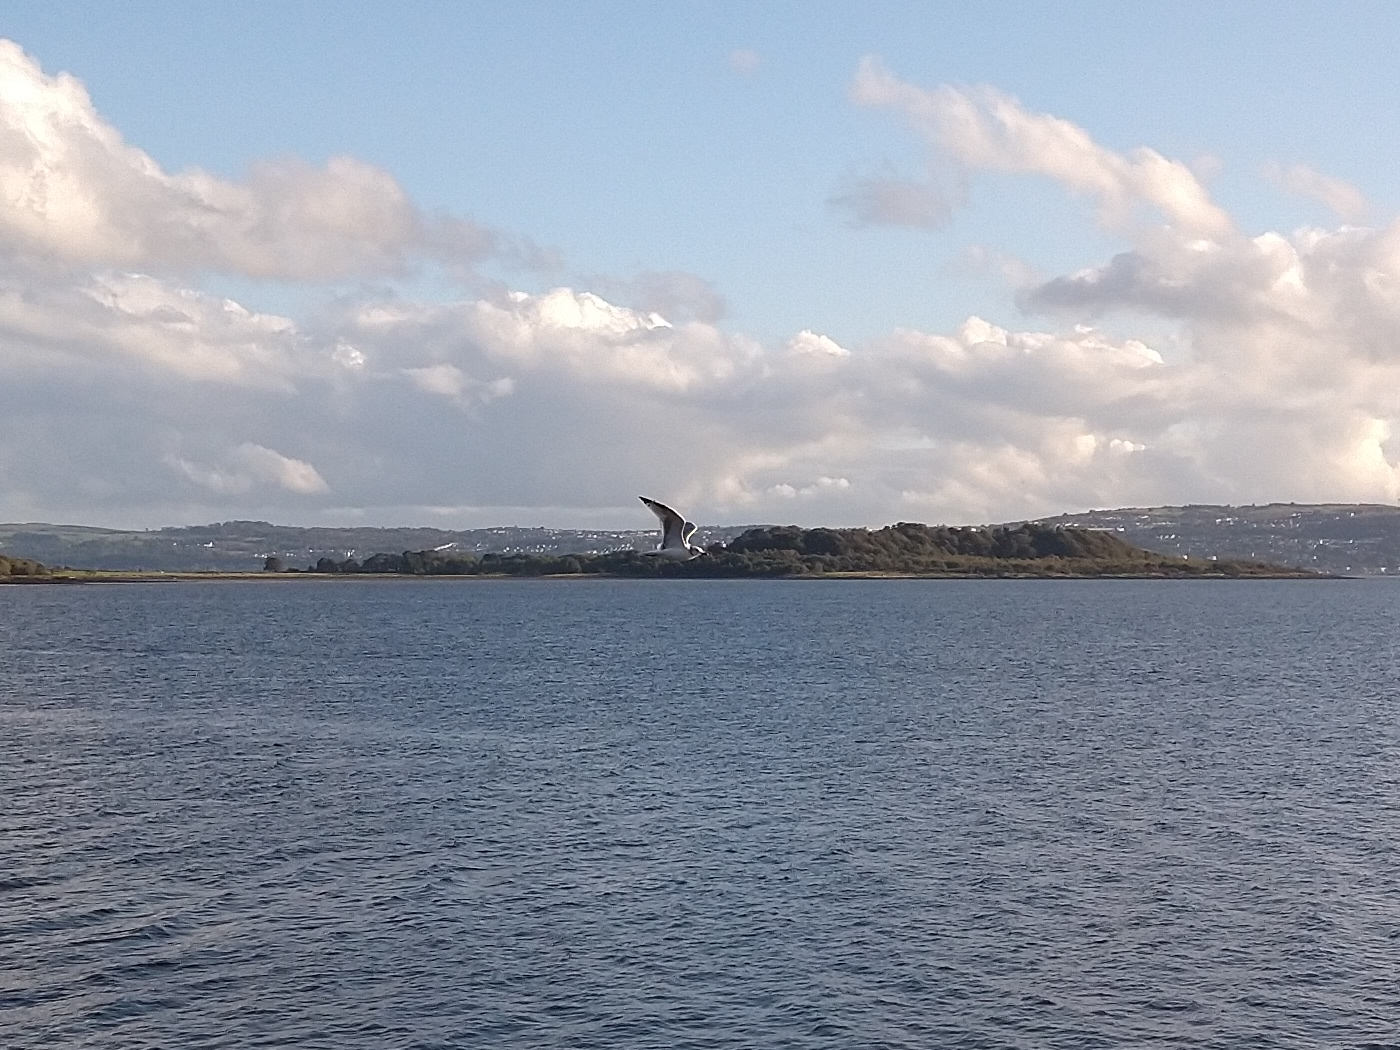 A seagull soaring above the Clyde by Craigendoran Pier with Ardmore Point in the background